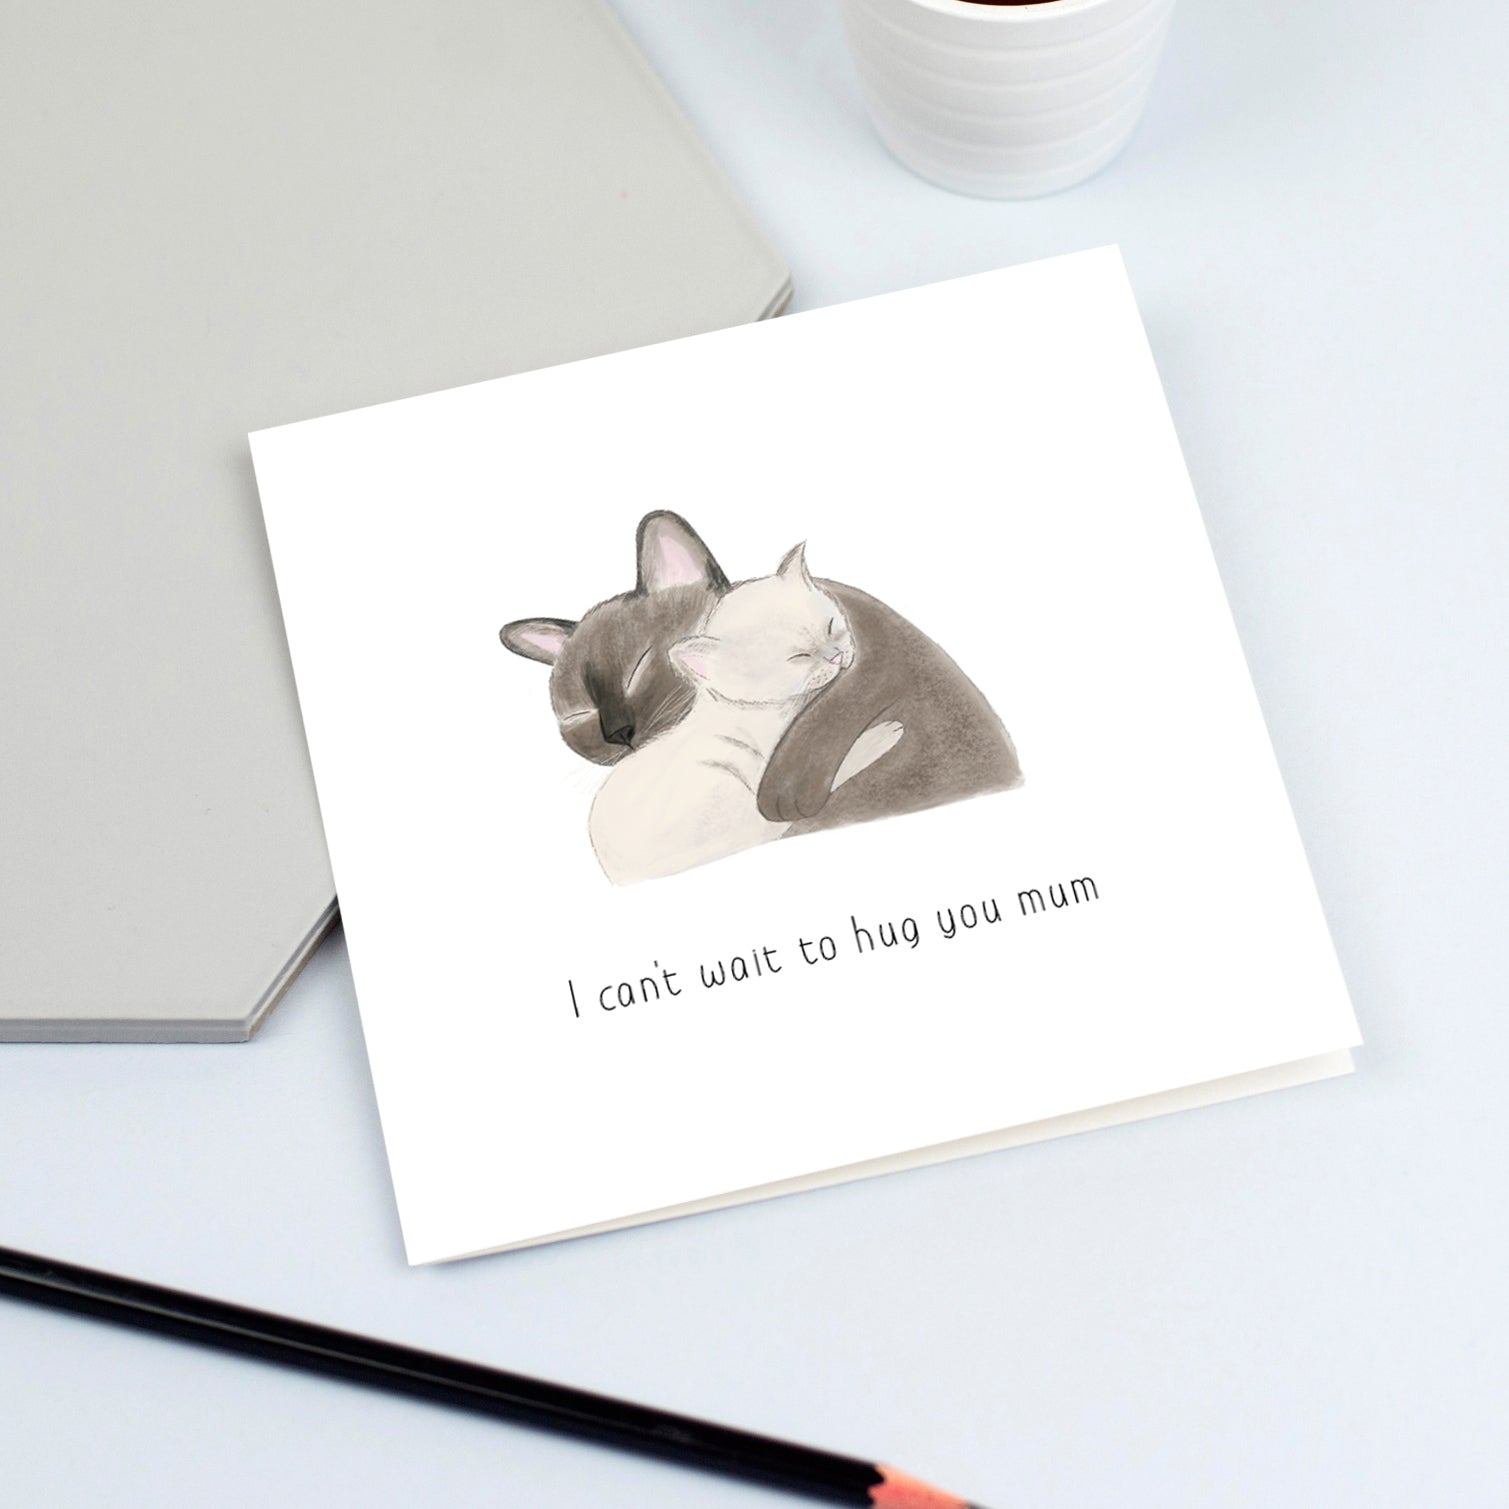 Cats cuddling card (Pick your own caption)